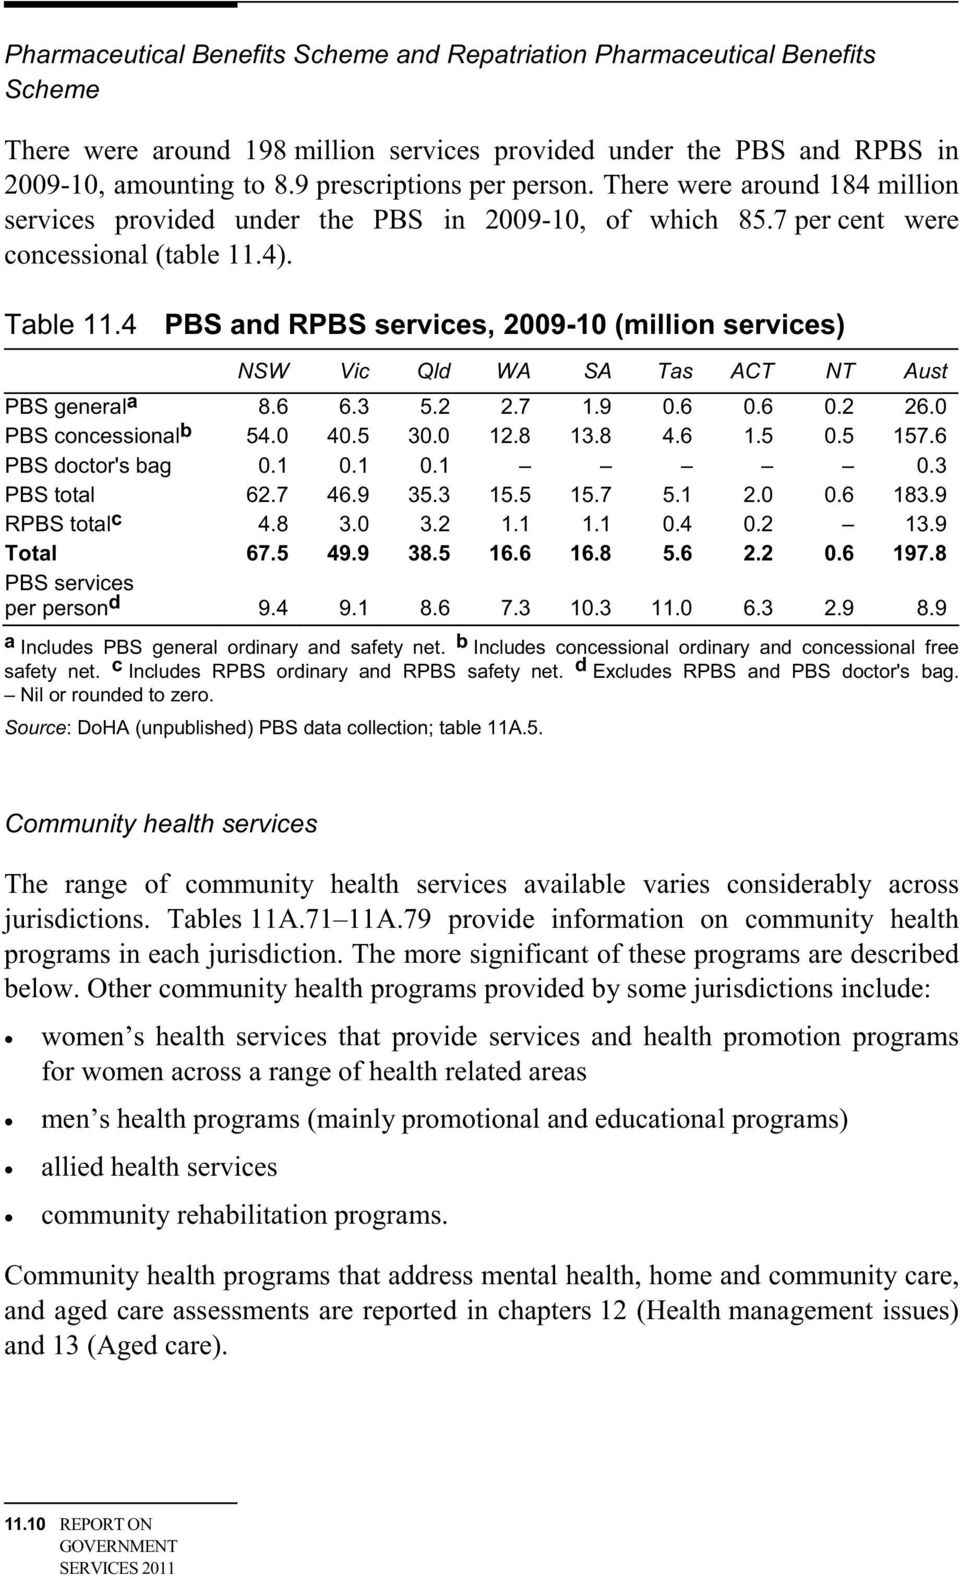 4 PBS and RPBS services, 2009-10 (million services) NSW Vic Qld WA SA Tas ACT NT Aust PBS general a 8.6 6.3 5.2 2.7 1.9 0.6 0.6 0.2 26.0 PBS concessional b 54.0 40.5 30.0 12.8 13.8 4.6 1.5 0.5 157.